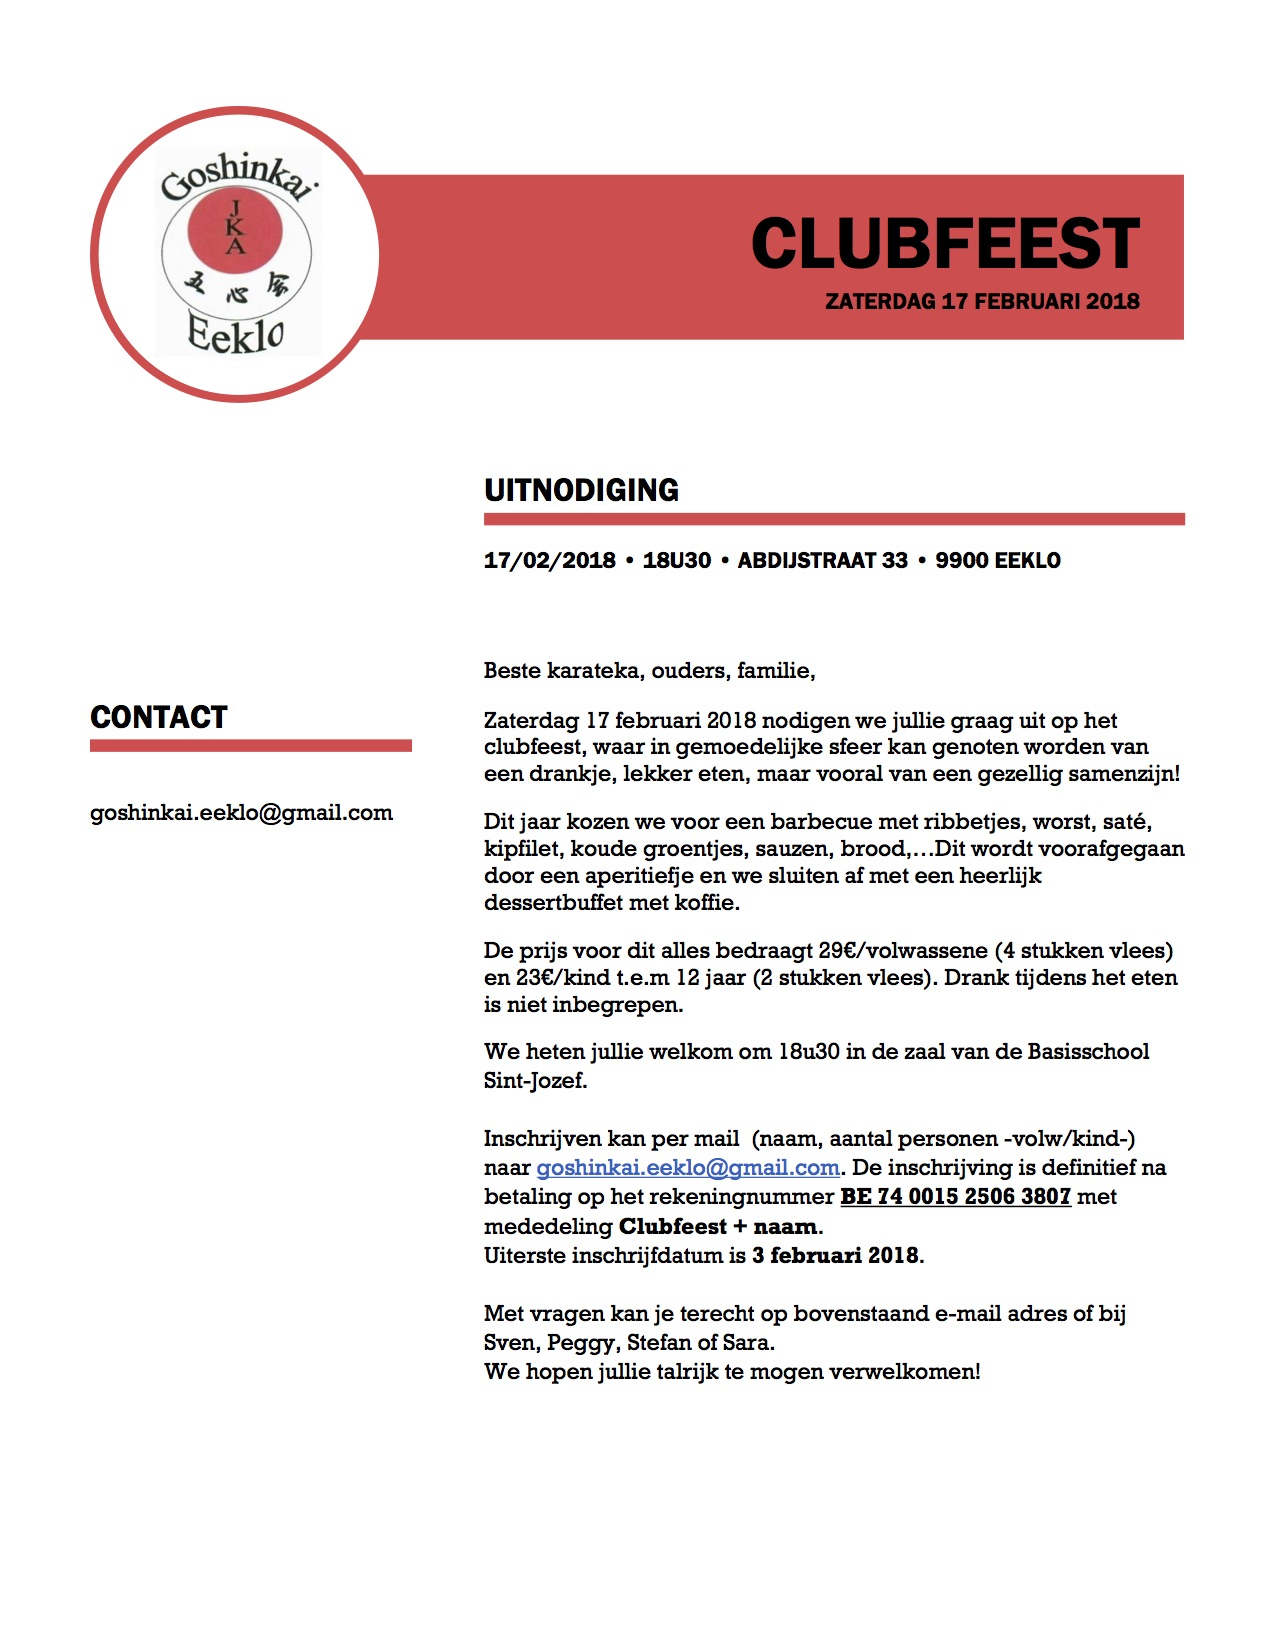 Uitnodiging Clubfeest Goshinkai 2018 - DEFINITIEF